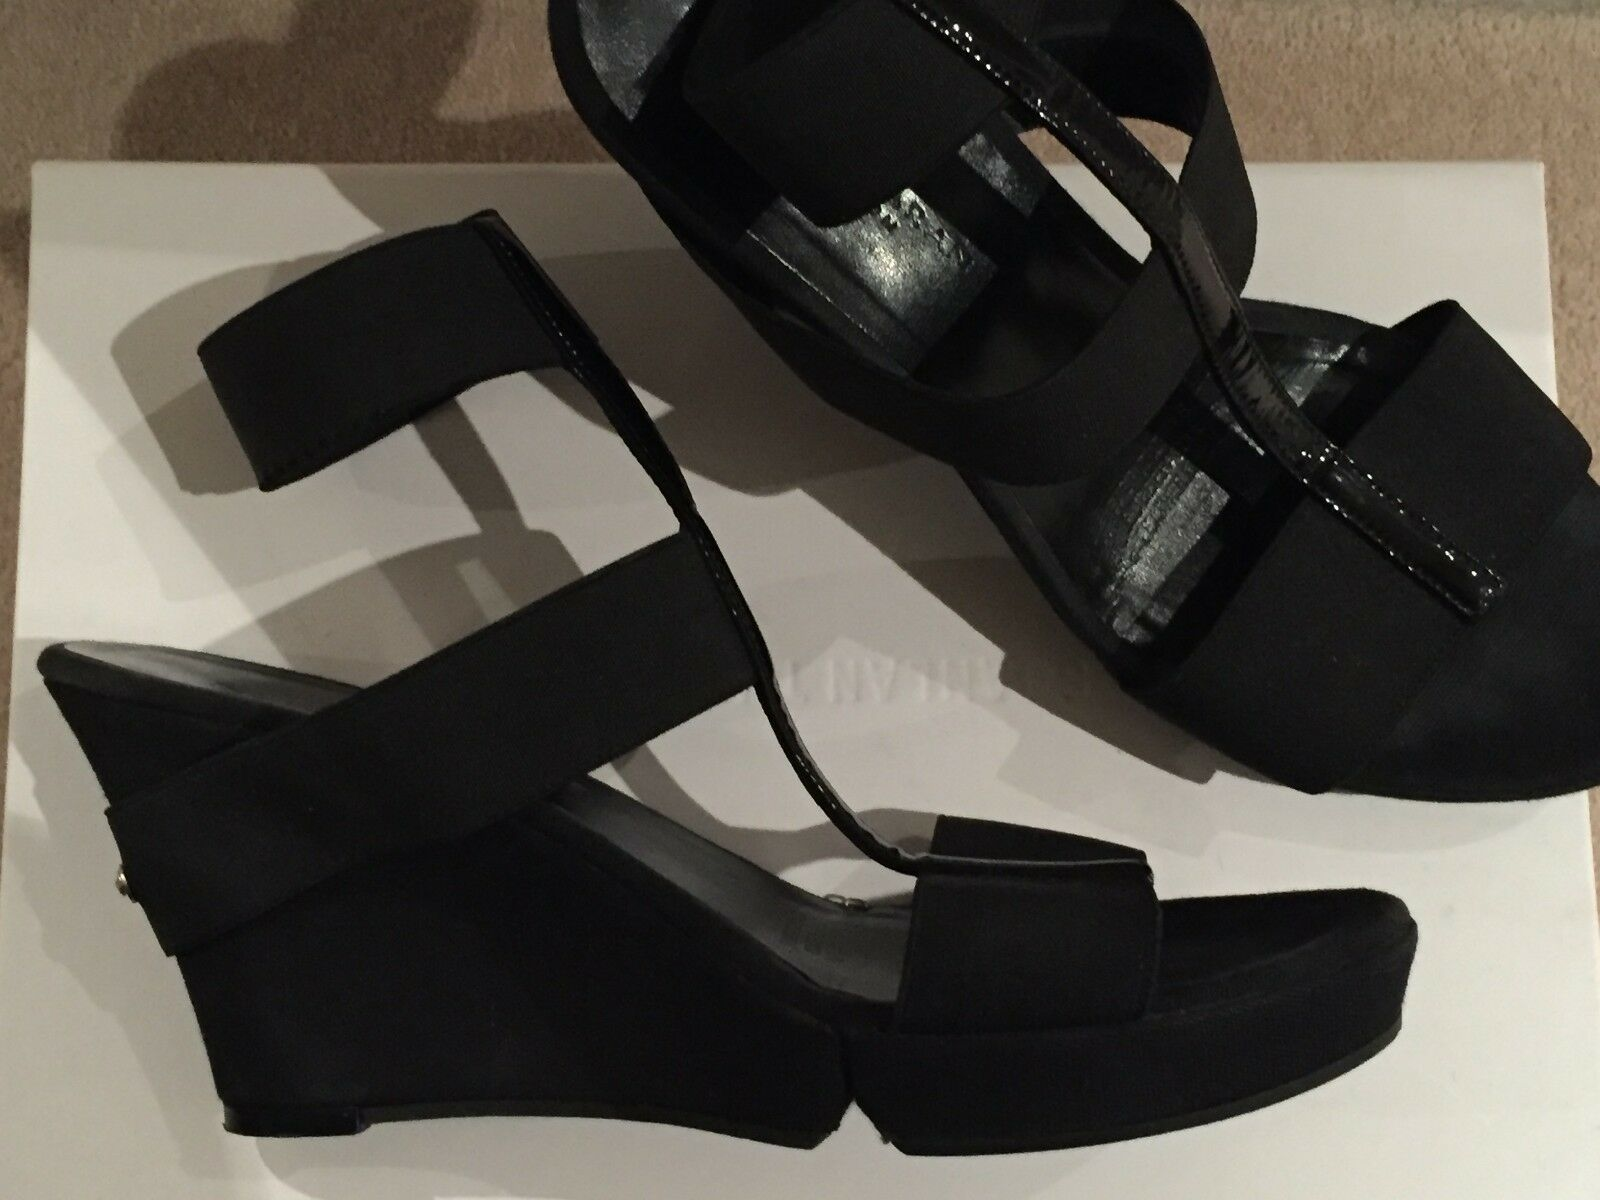 women KARAN Collection Black Leather & Fabric Platform, Wedge Sandals Heels 39